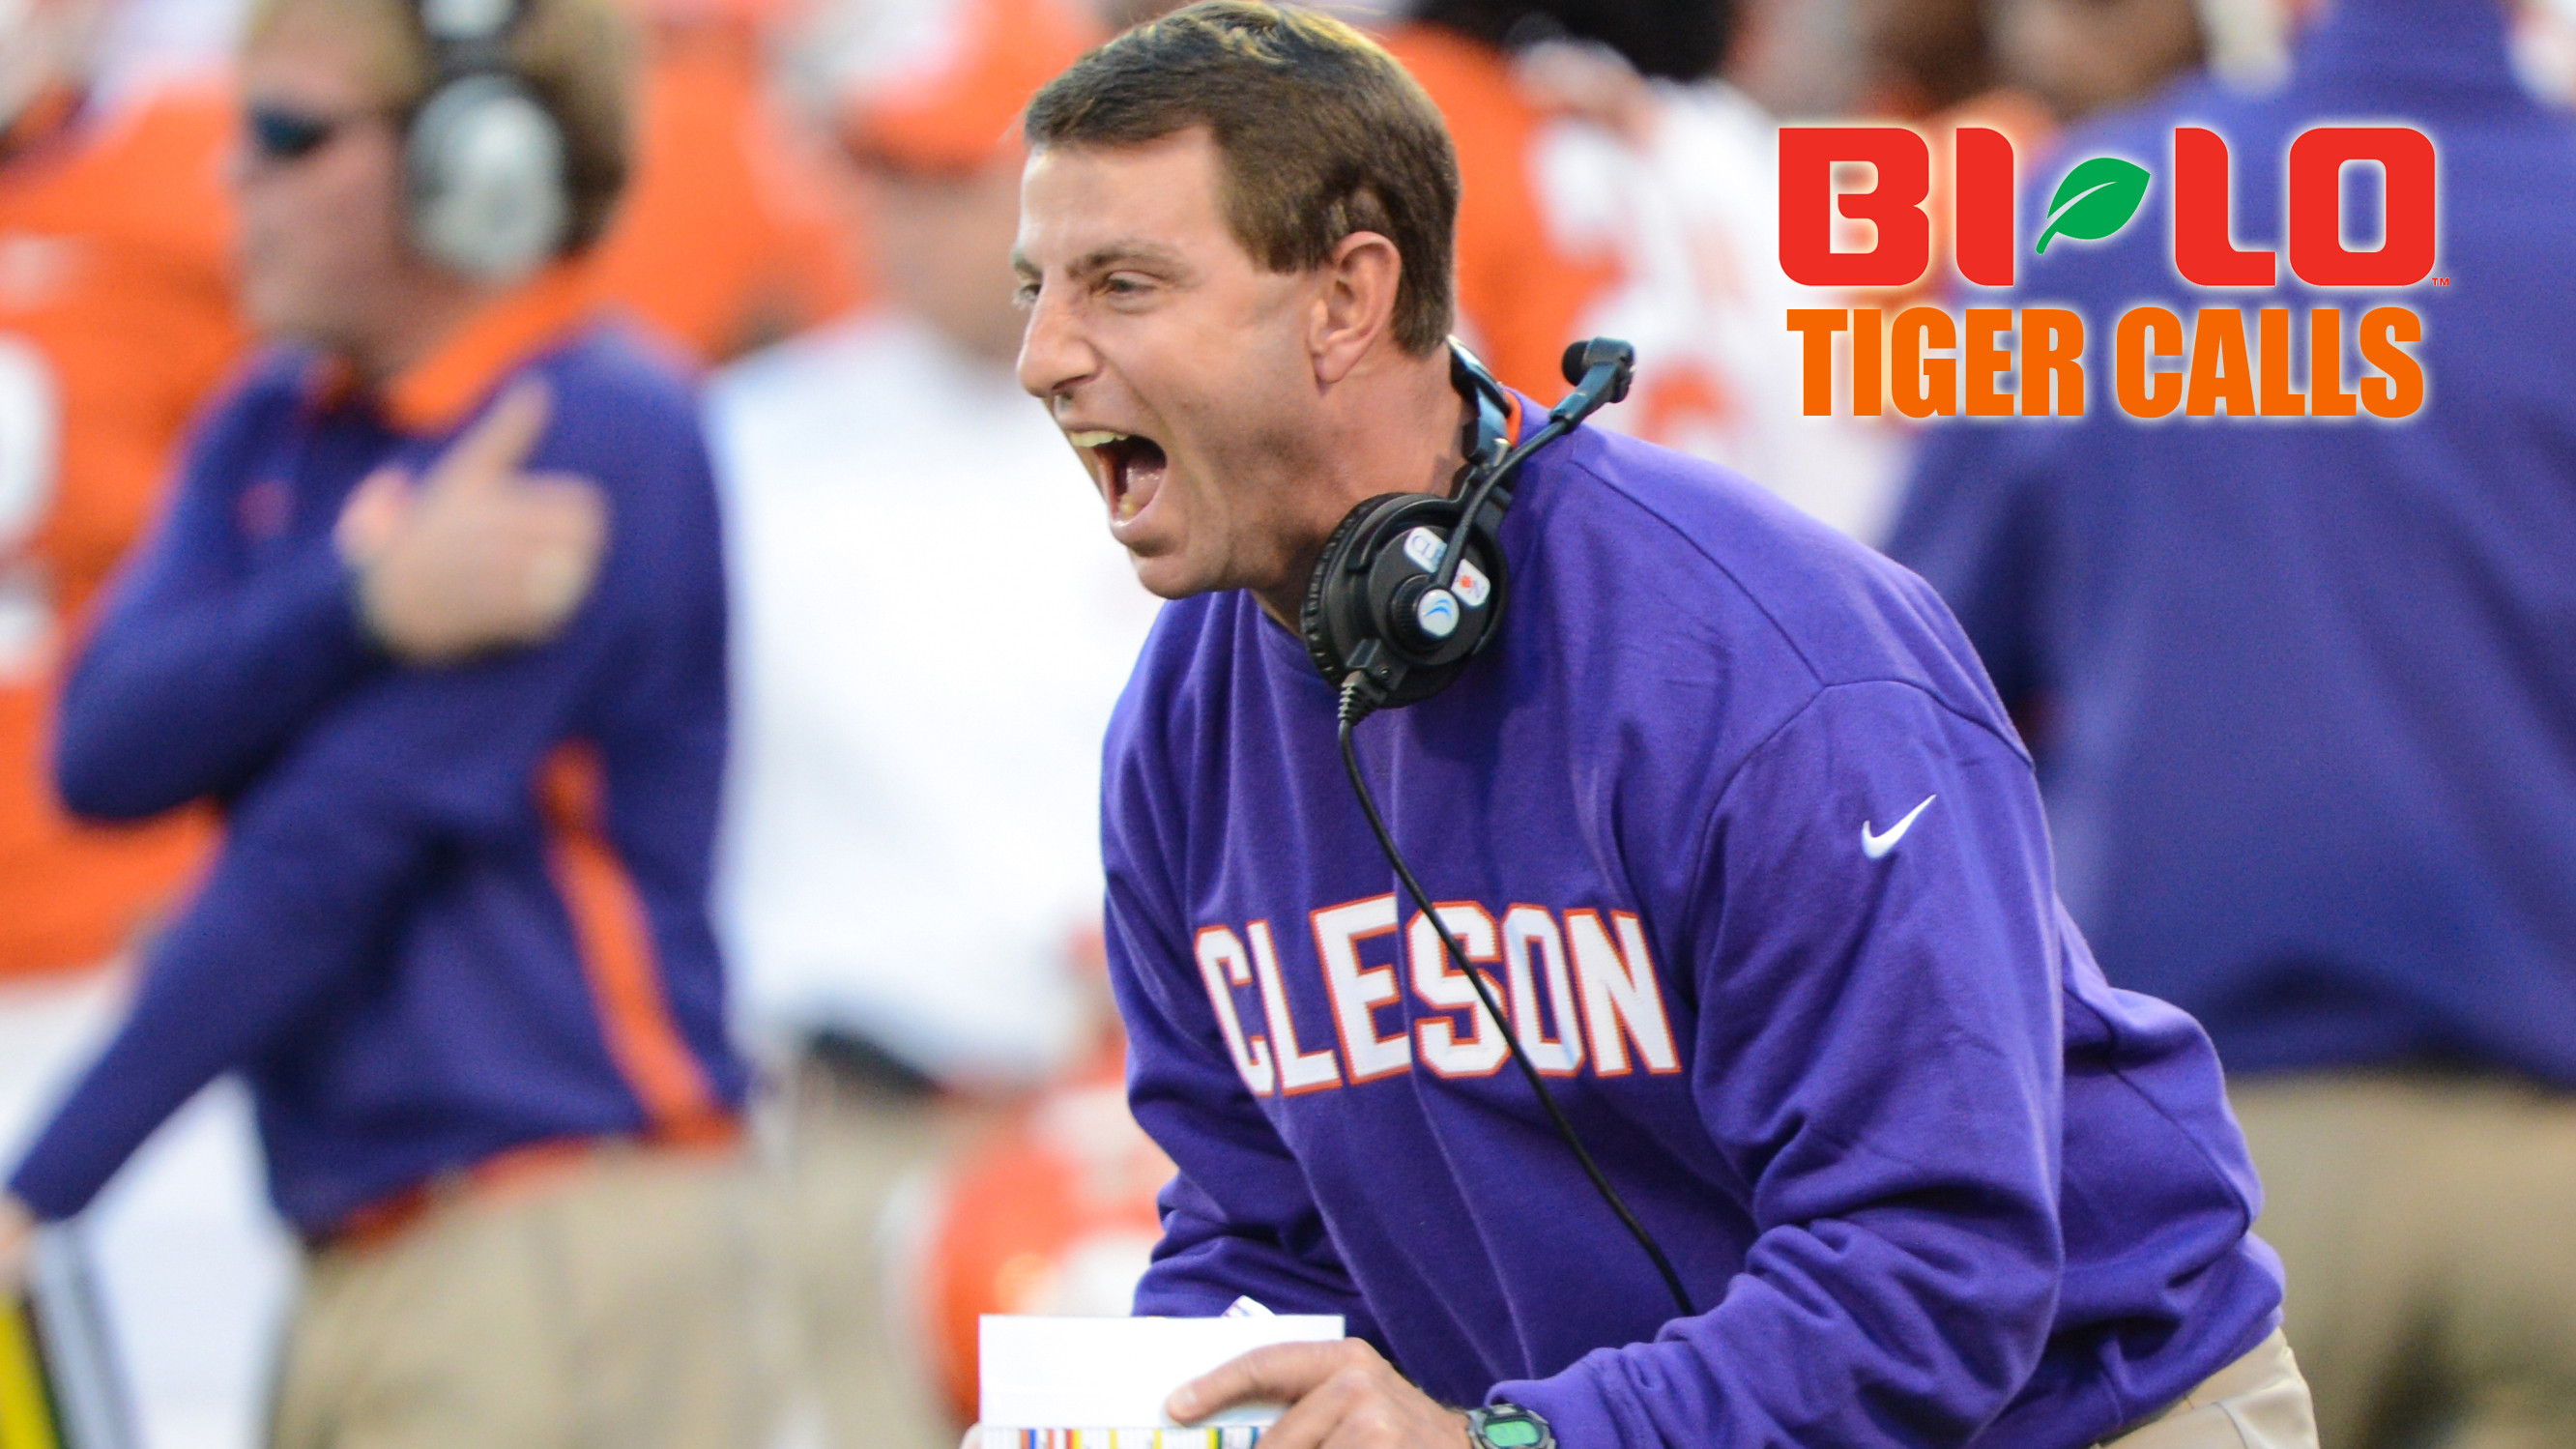 Tiger Calls with Dabo Swinney to be Held at BI-LO in Seneca Monday at 8 PM